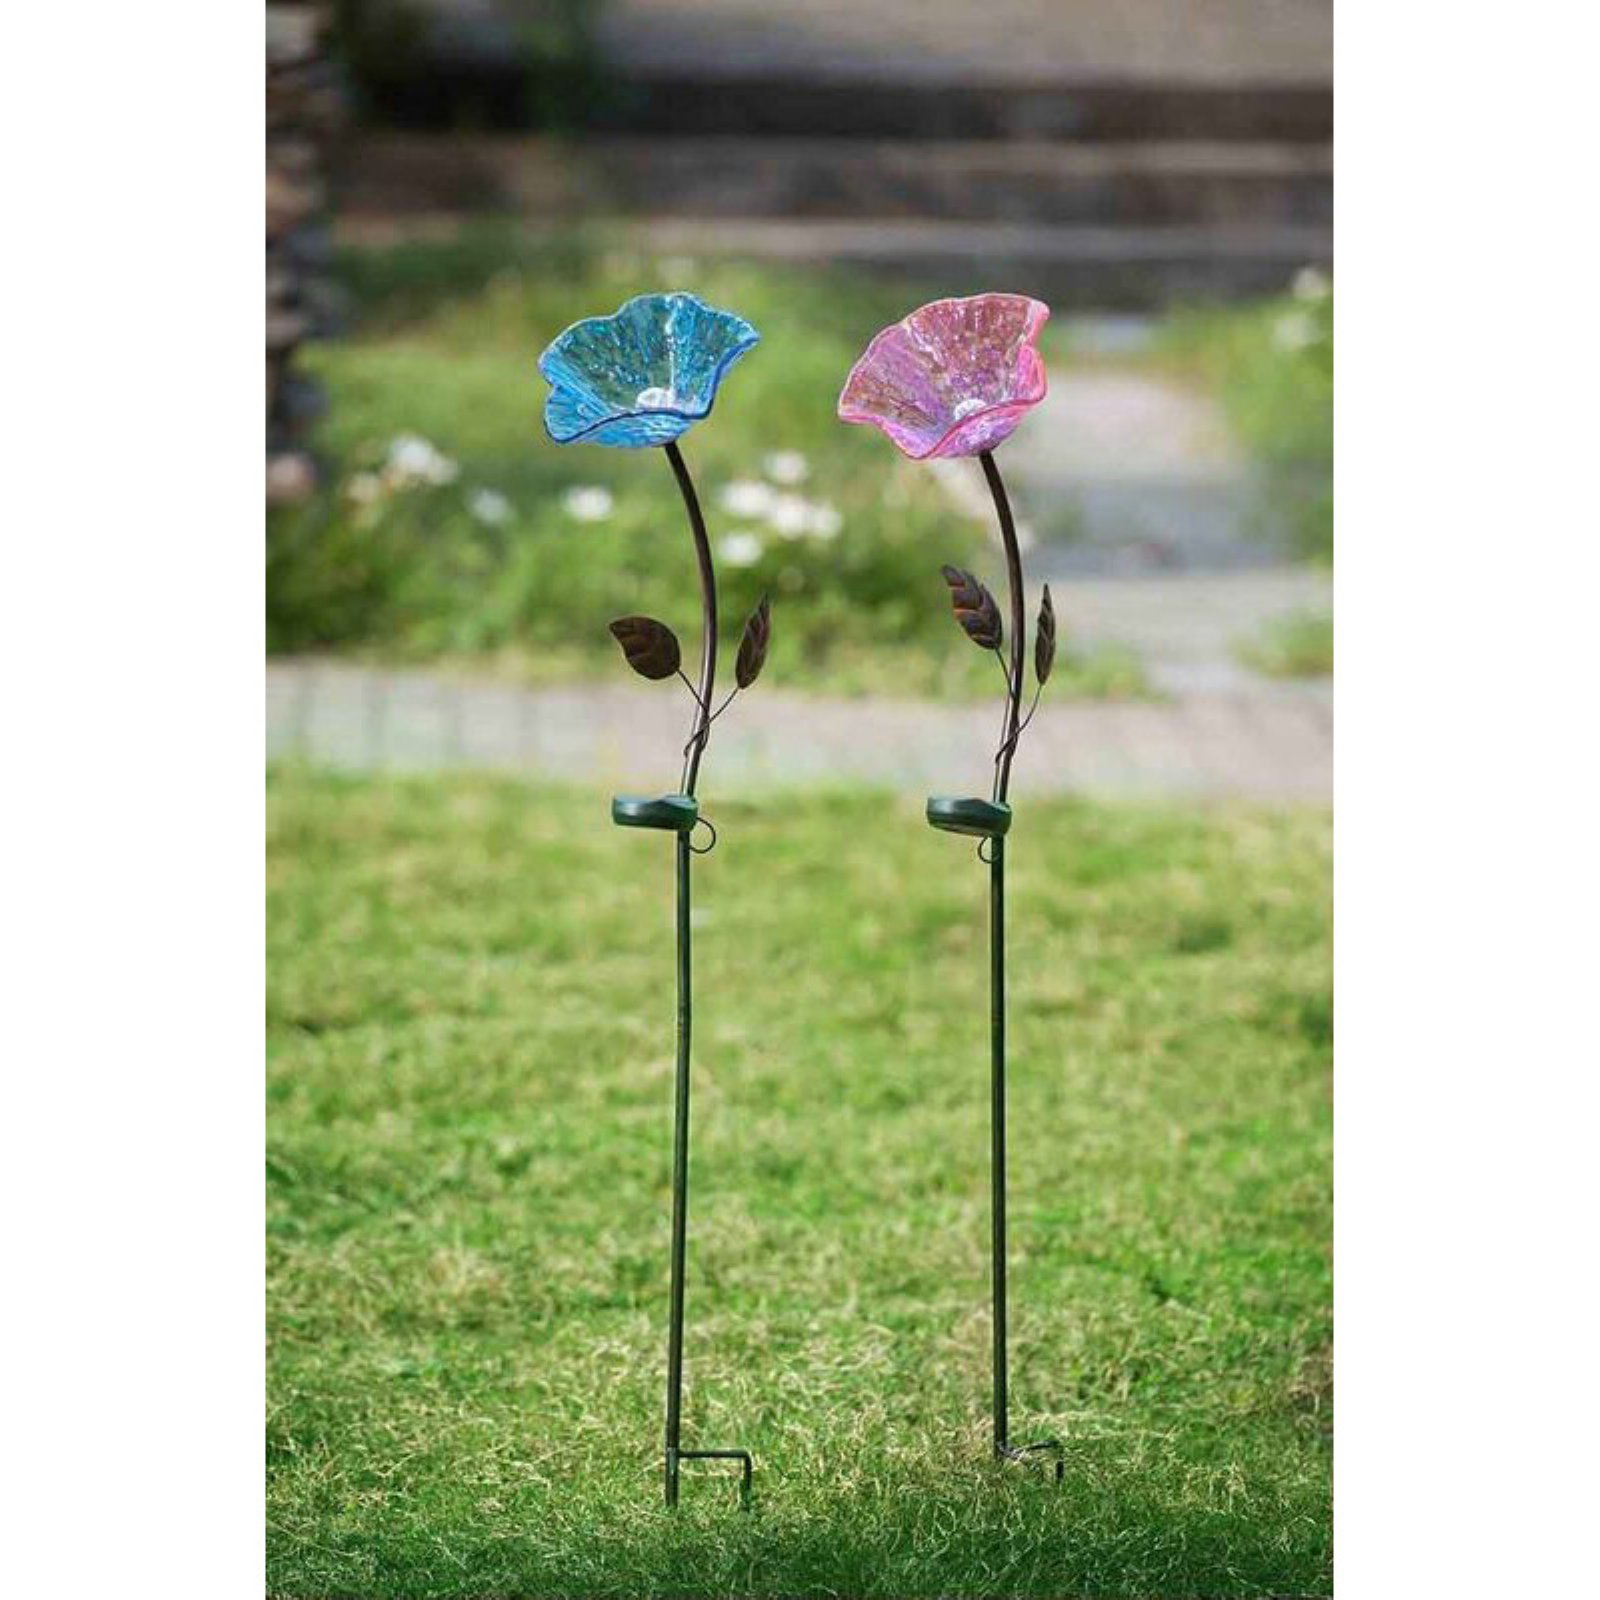 Sunjoy 110309029 Flower Garden Stake with LED Solar Technology, Purple and Blue, Set of 2, 40""